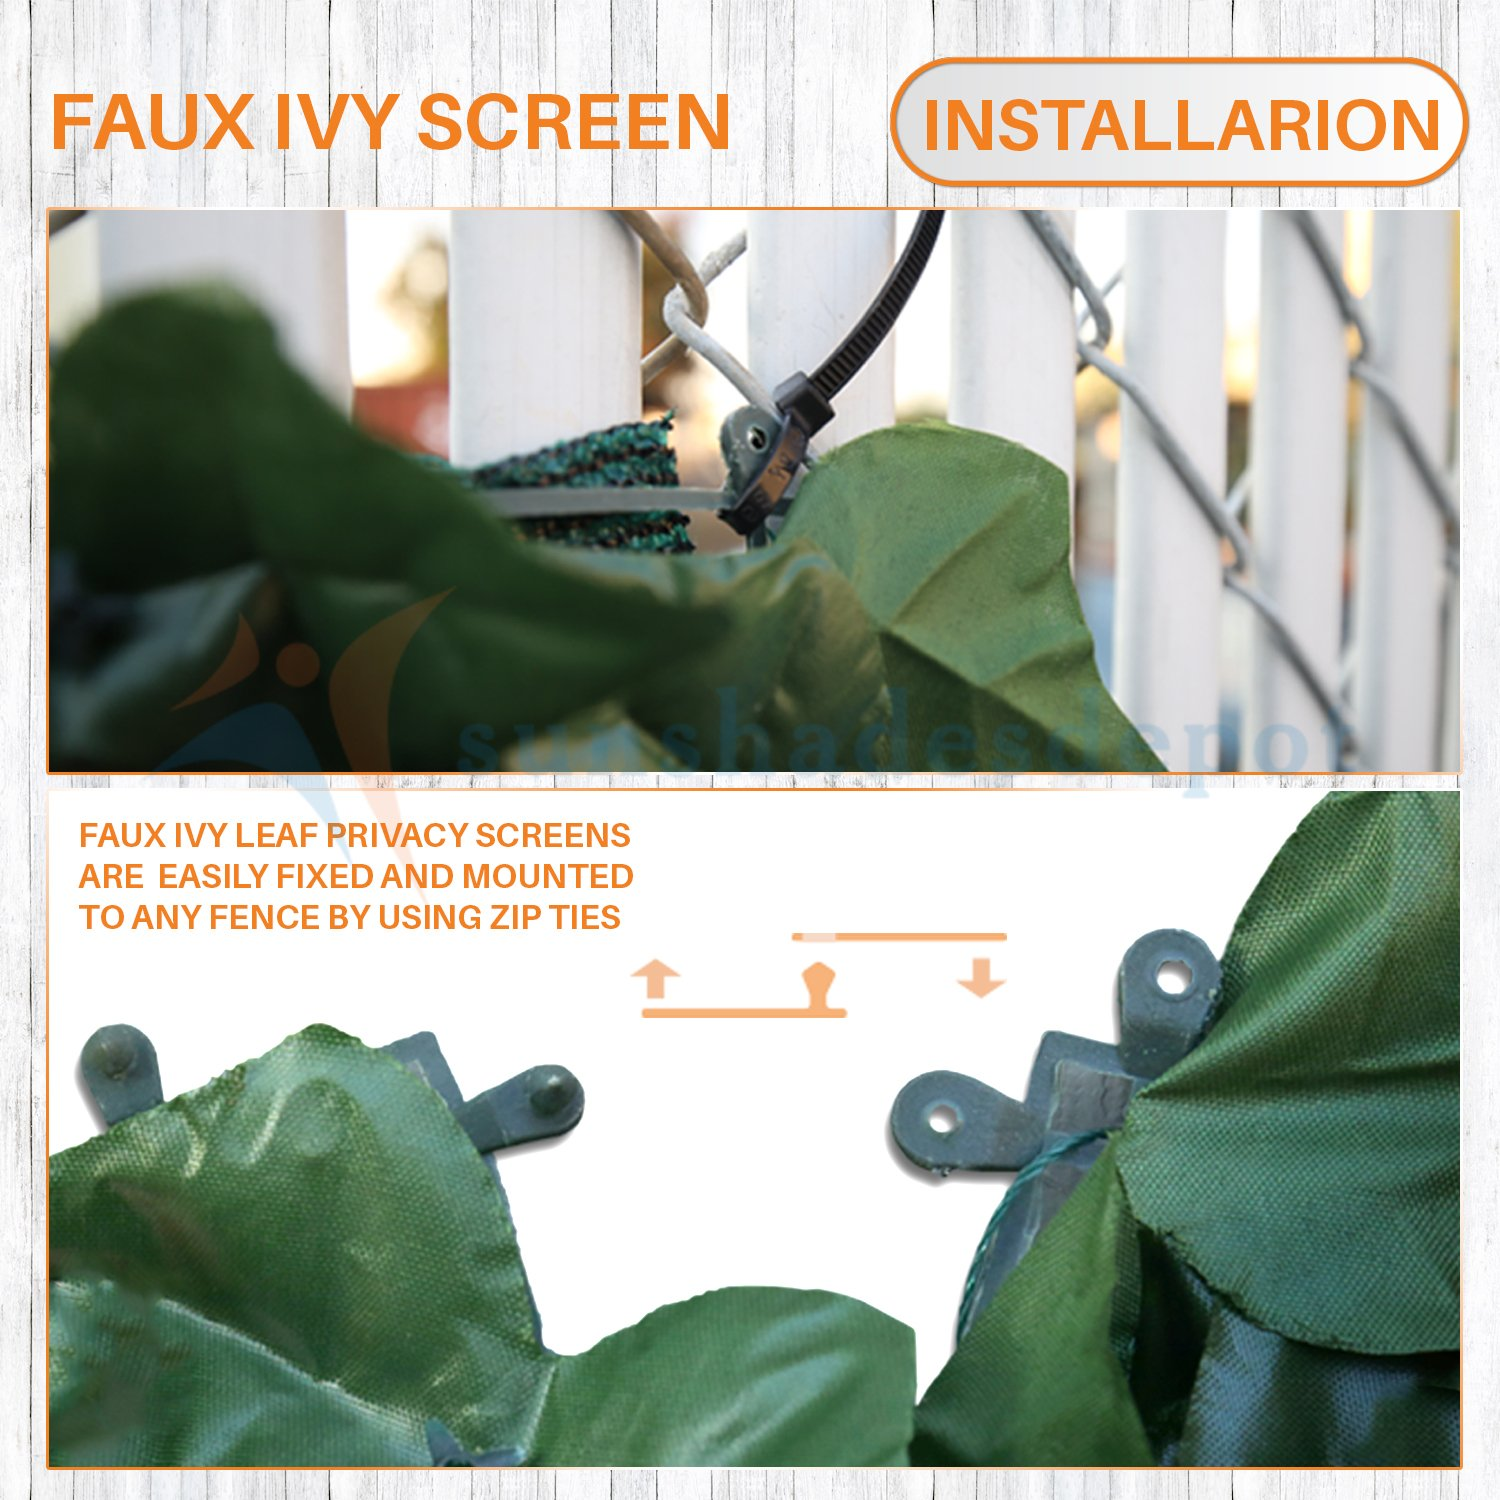 Sunshades Depot 4' x 14' Artificial Faux Ivy Privacy Fence Screen Leaf Vine Decoration Panel with Mesh Back by Sunshades Depot (Image #4)